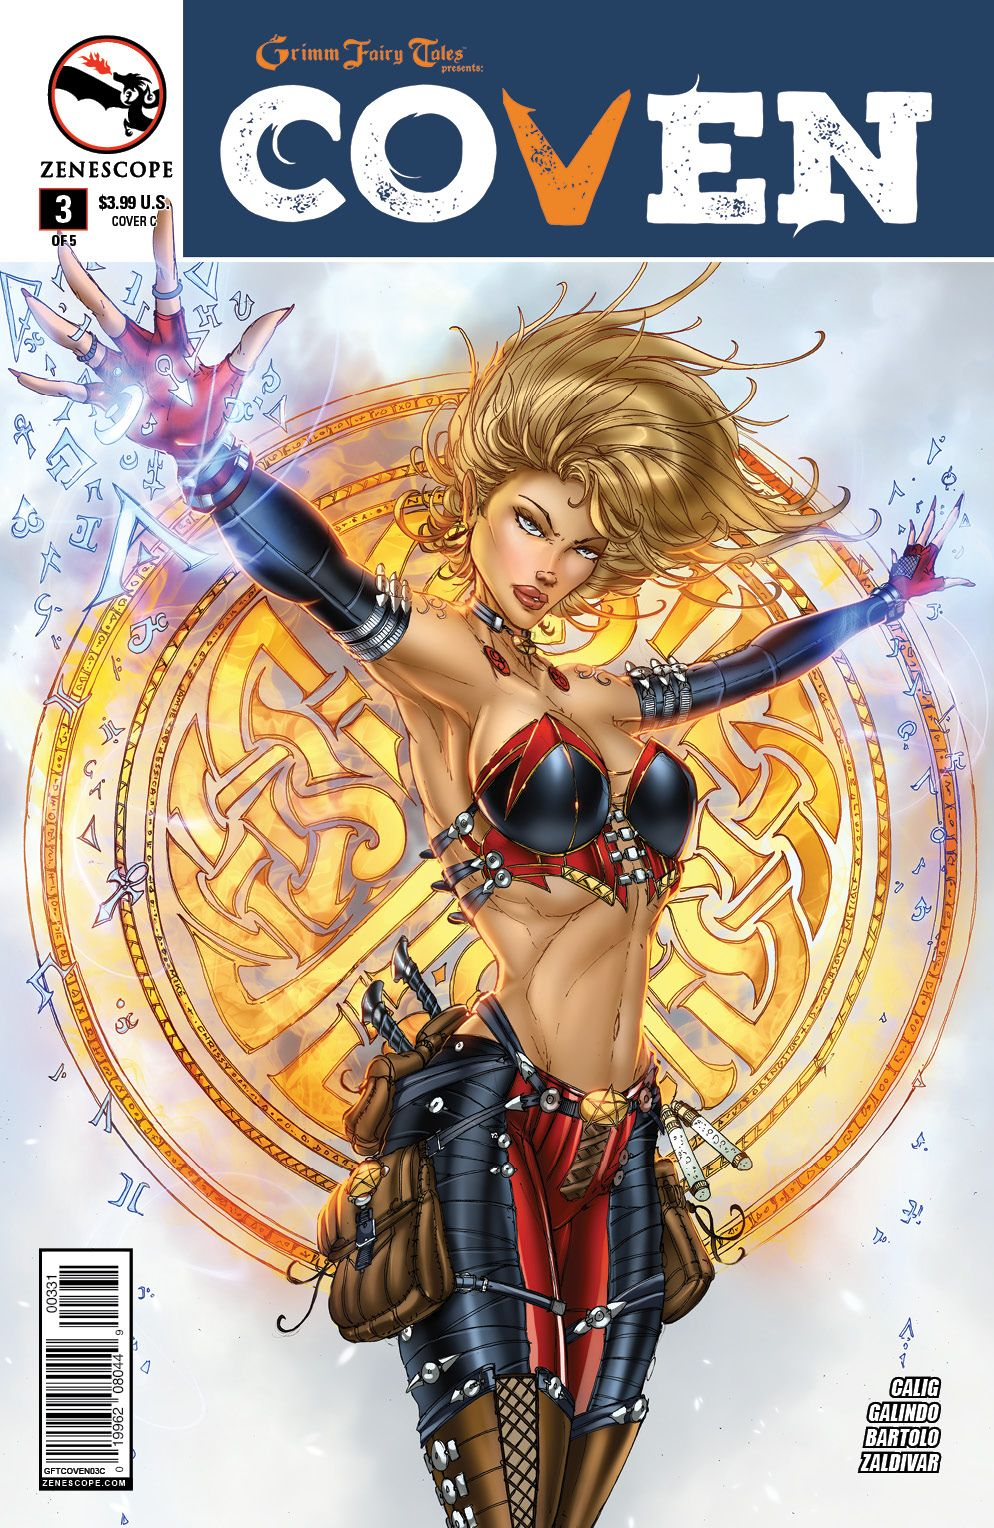 1A cover ~ Zenescope Grimm Fairy Tales Presents Coven #1